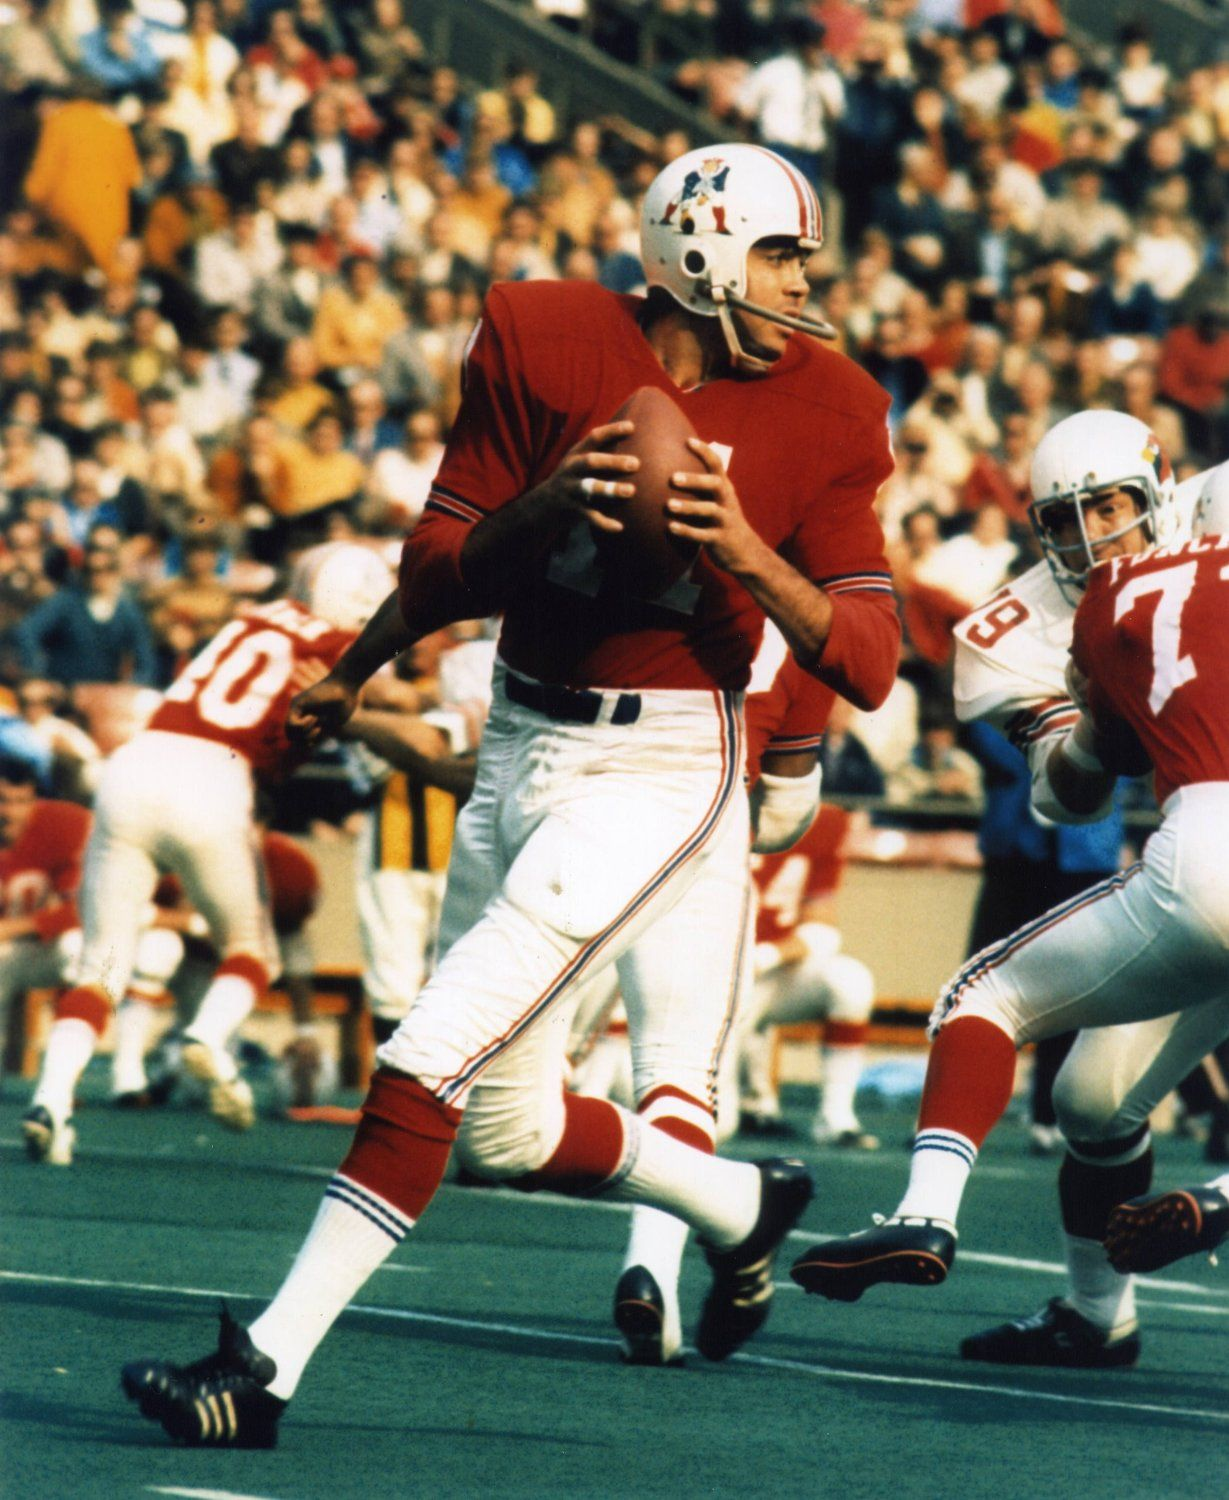 Joe Kapp in his final year of football, 1970 with the Boston ...